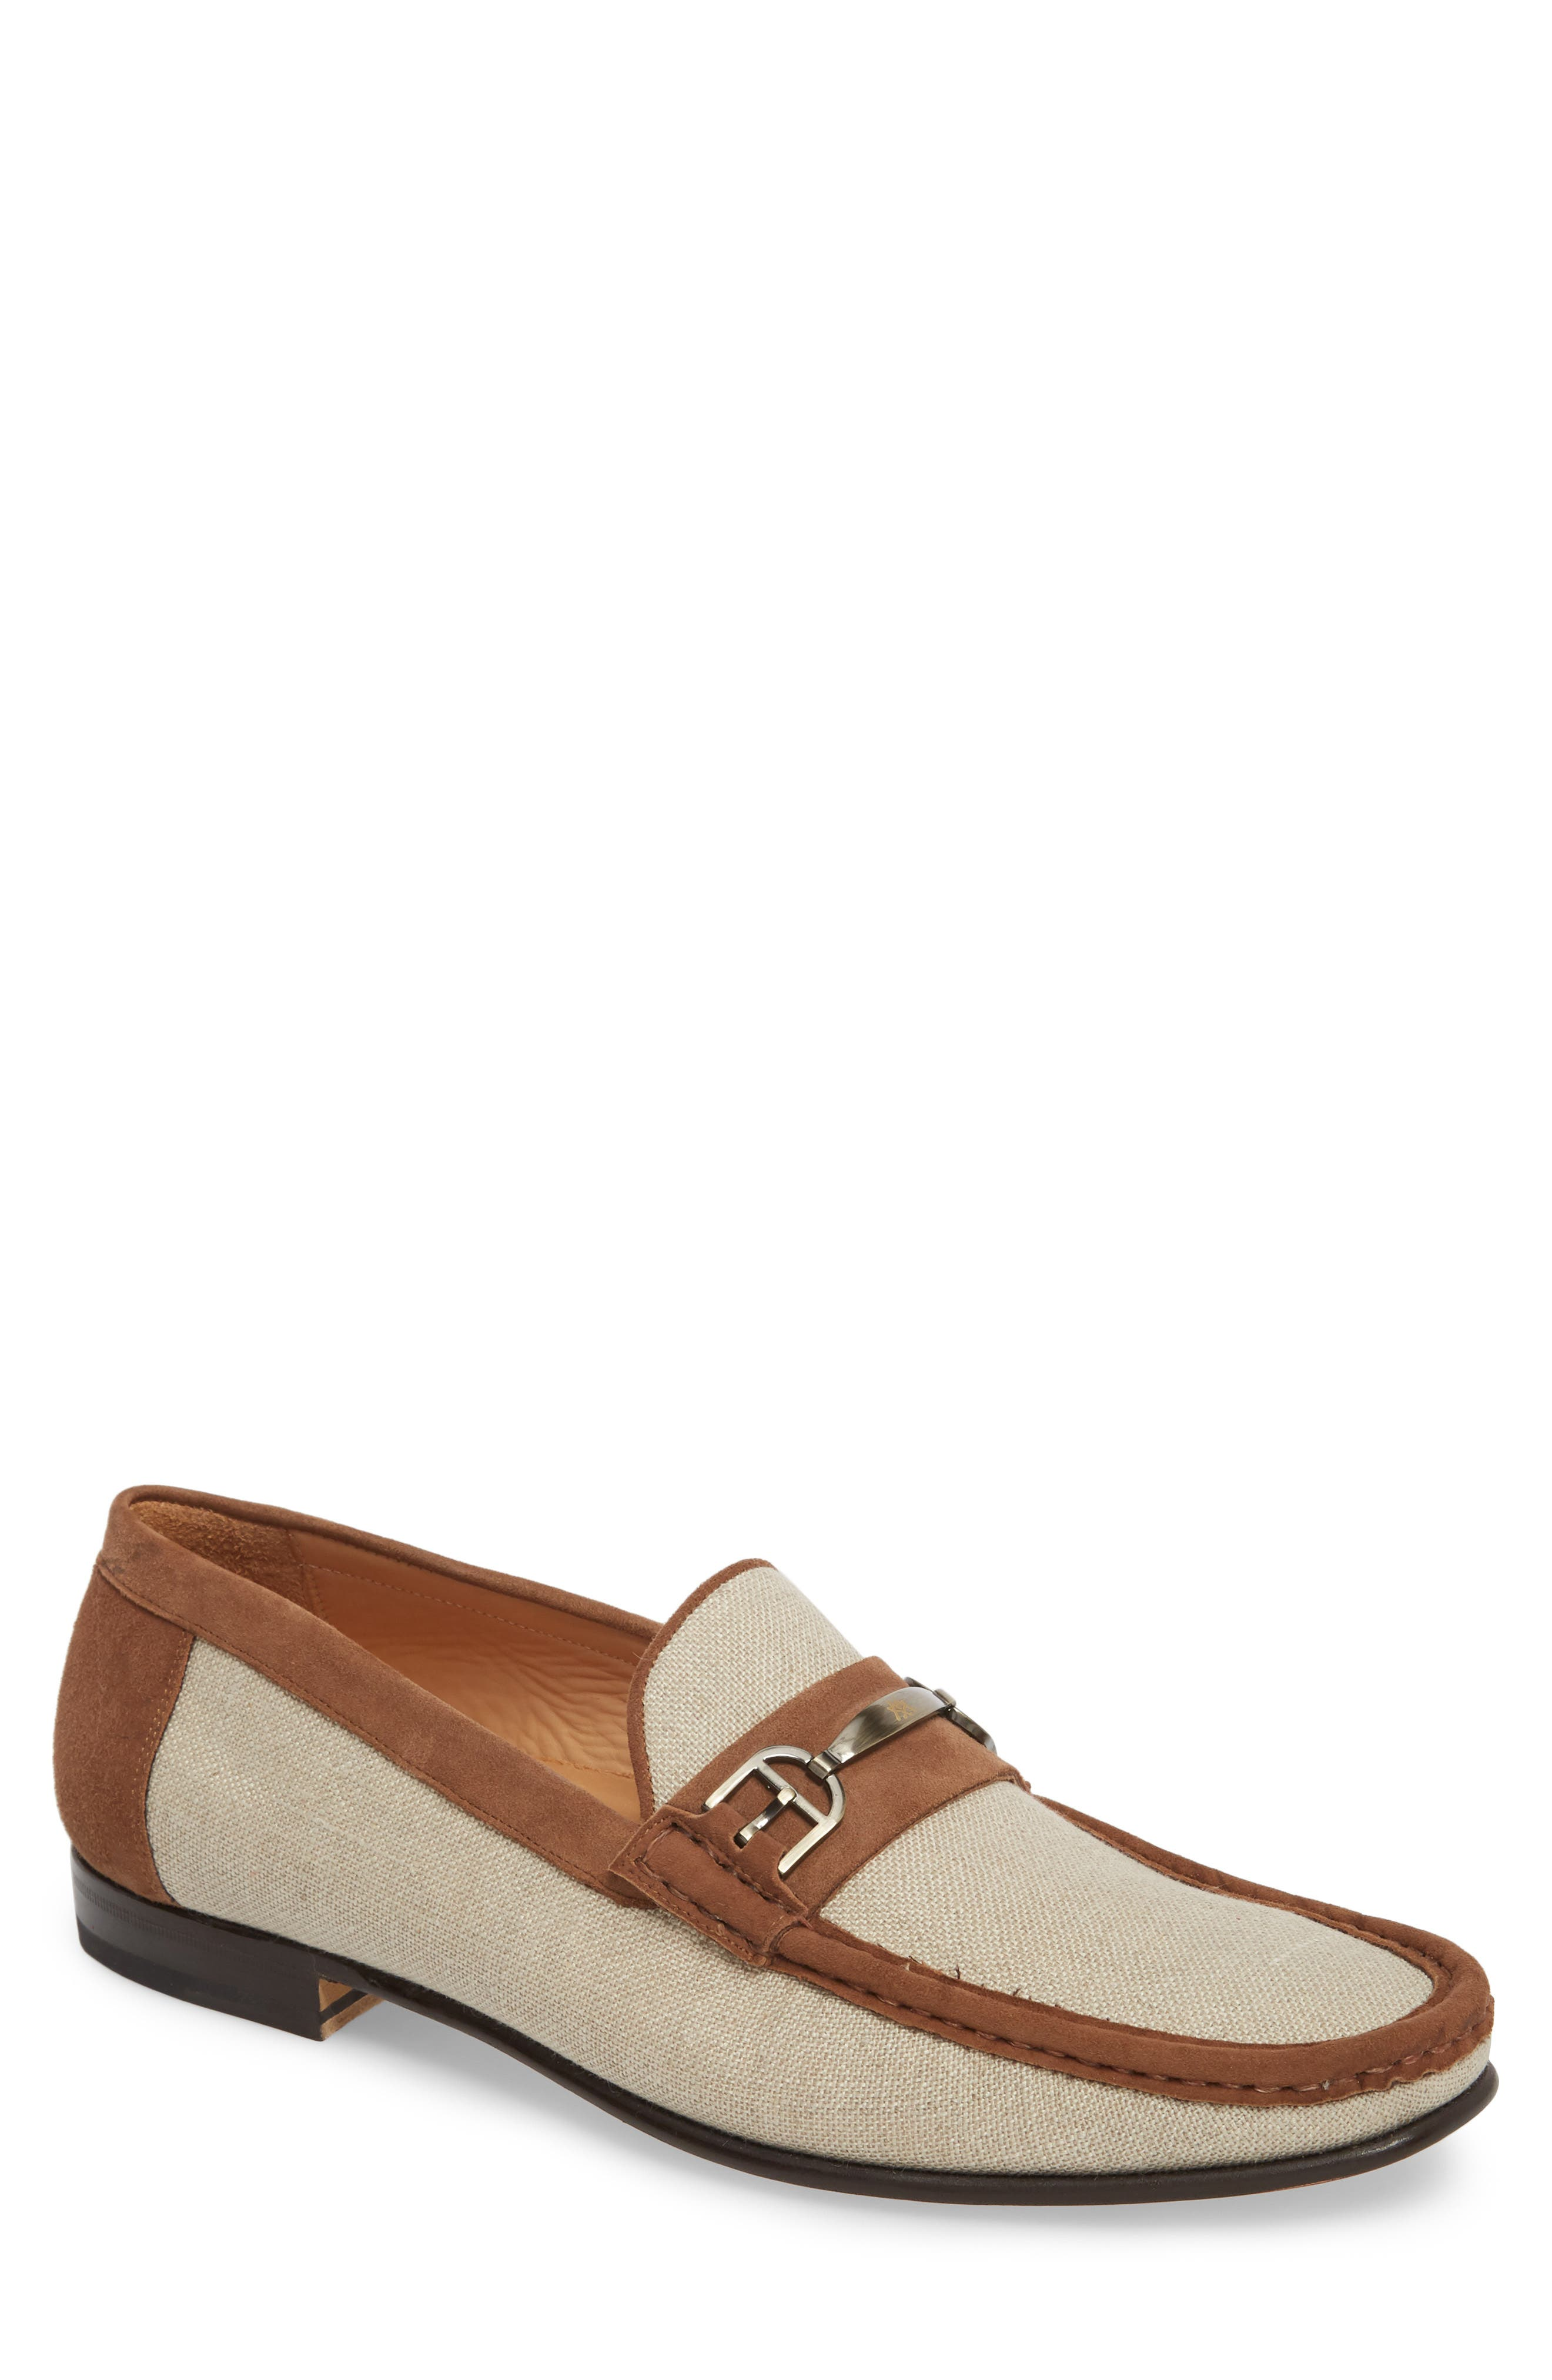 Jason Two-Tone Bit Loafer,                             Main thumbnail 1, color,                             BONE/ COGNAC LINEN/ SUEDE